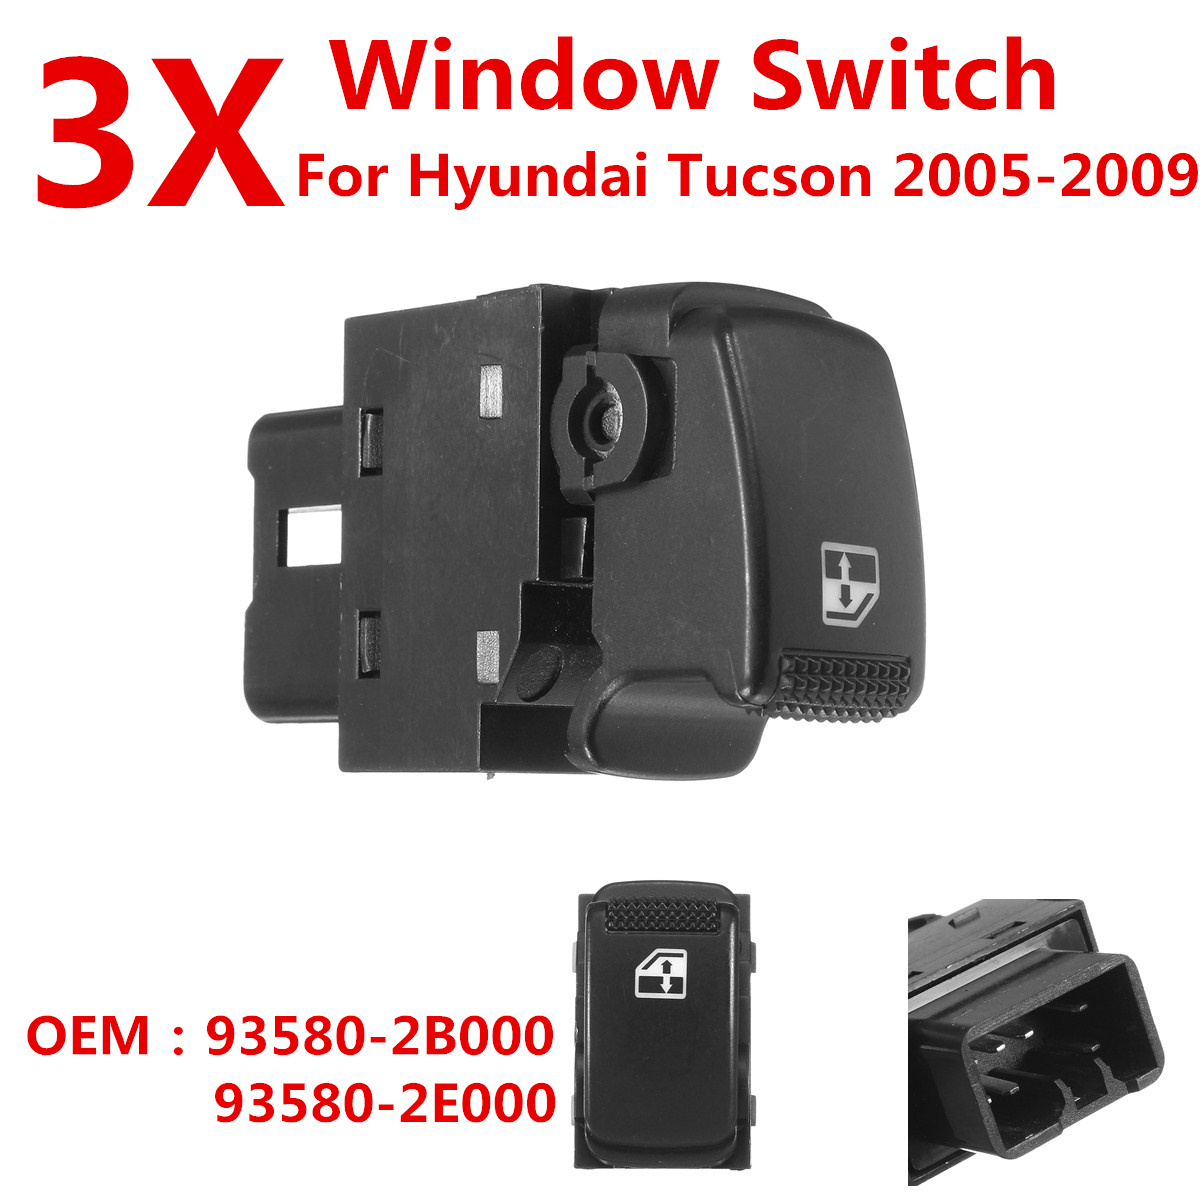 3X Car Electrical Window Glass Control Switch Button Front Right Rear Left Right 93580-2E000 For Hyundai Tucson 2005 2006 - 2009